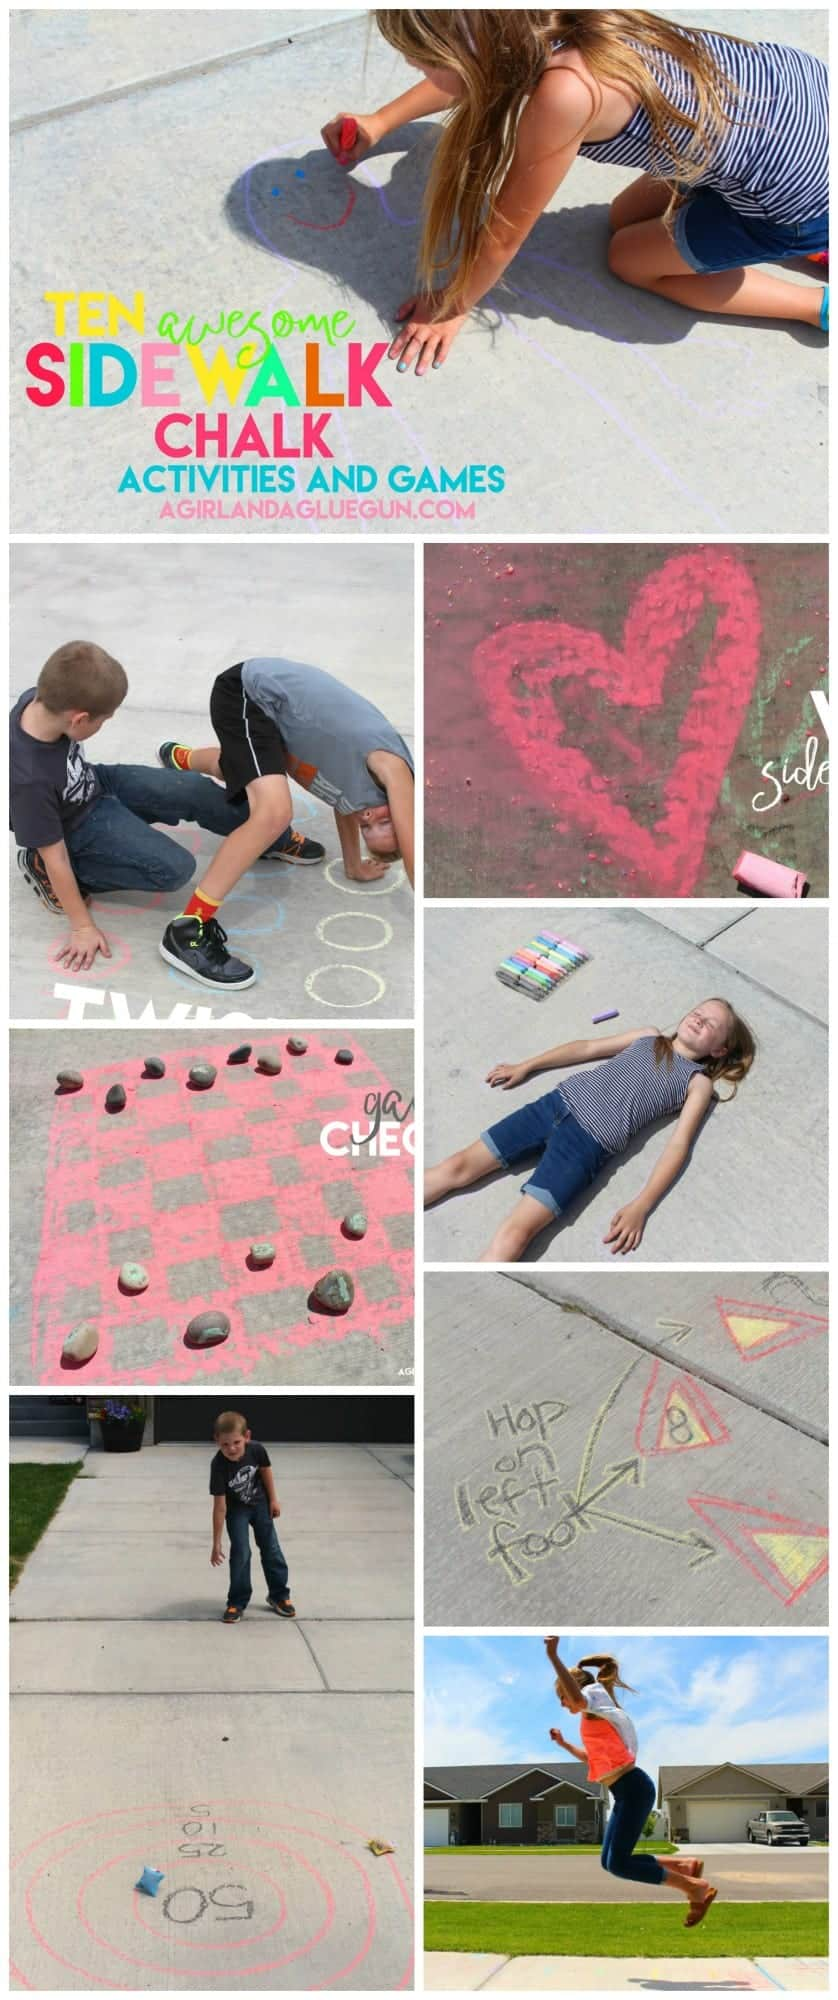 10 amazingly fun things to do this summer with sidewalk chalk